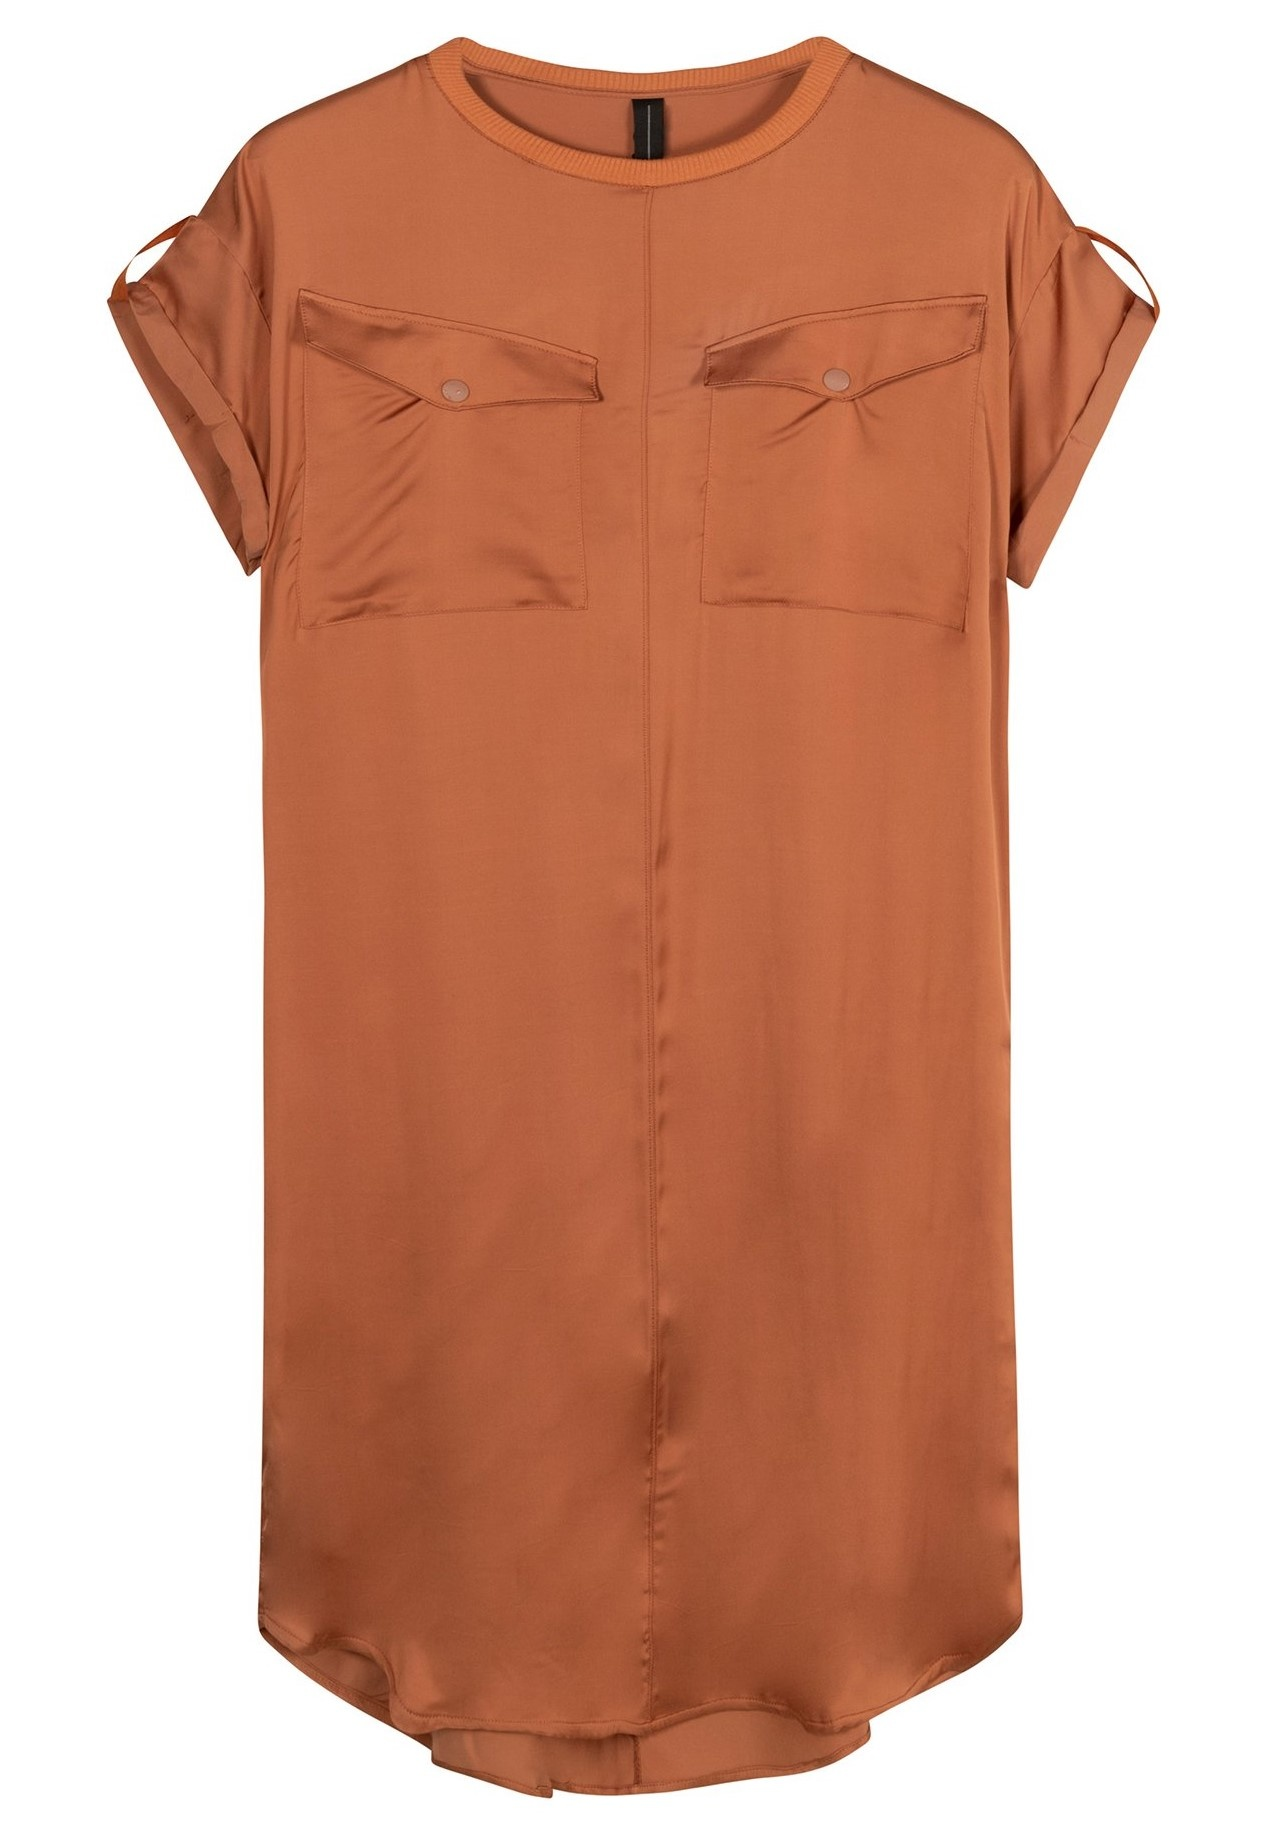 Jurk dress copper brown-2